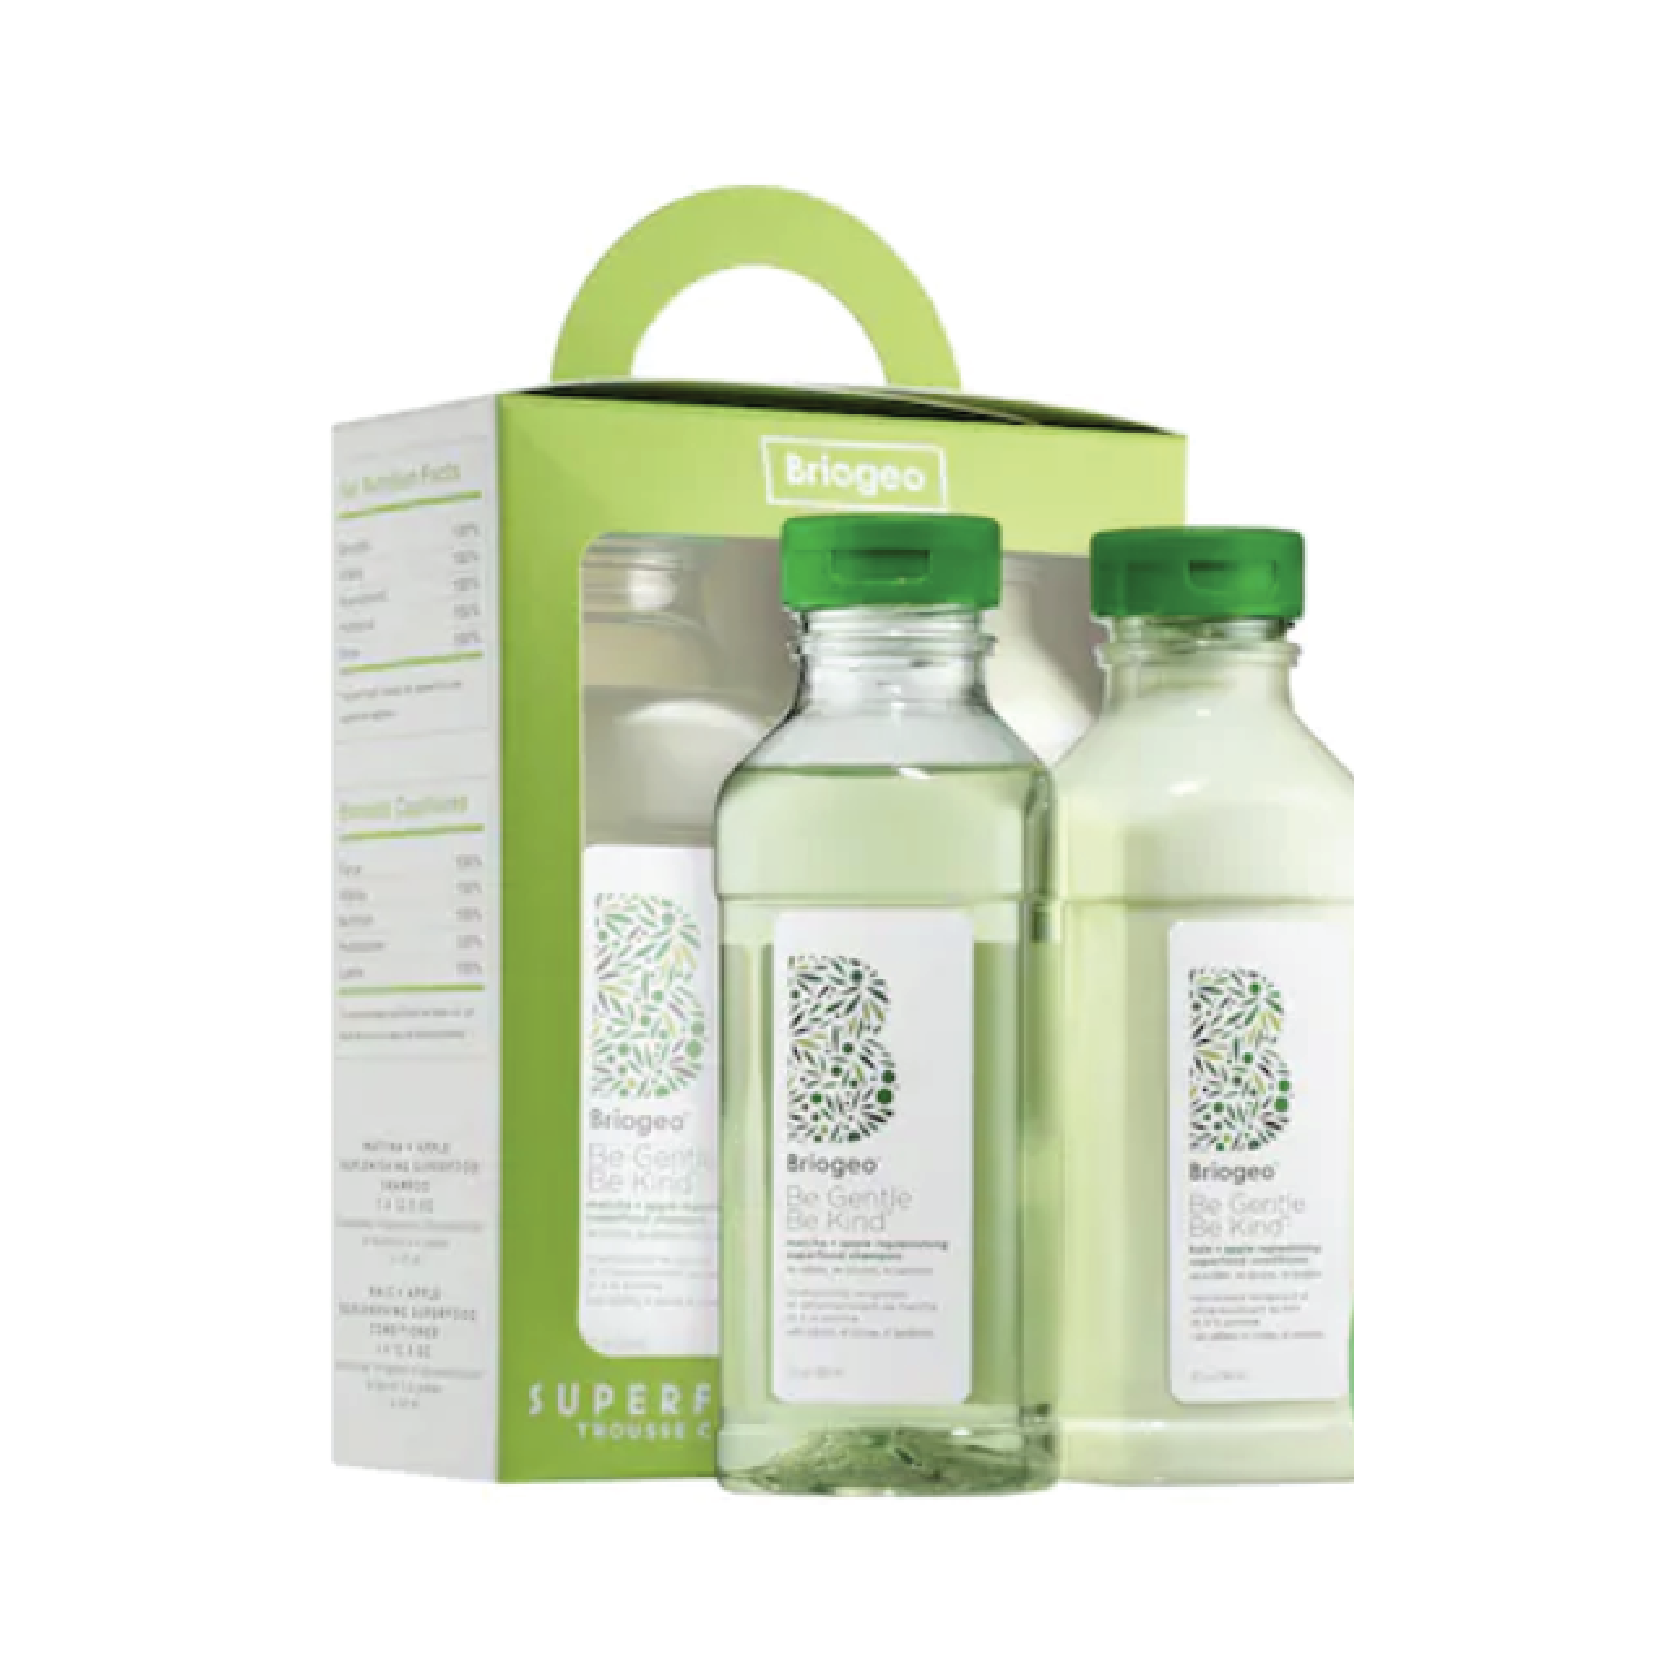 Briogeo Superfoods Hair Pack - $48 at SephoraBriogeo is another favorite brand of mine, especially when it comes to clean hair care. I honestly don't know what's cuter than this juice-pack-inspired set especially when you factor in how fresh the formula smells.